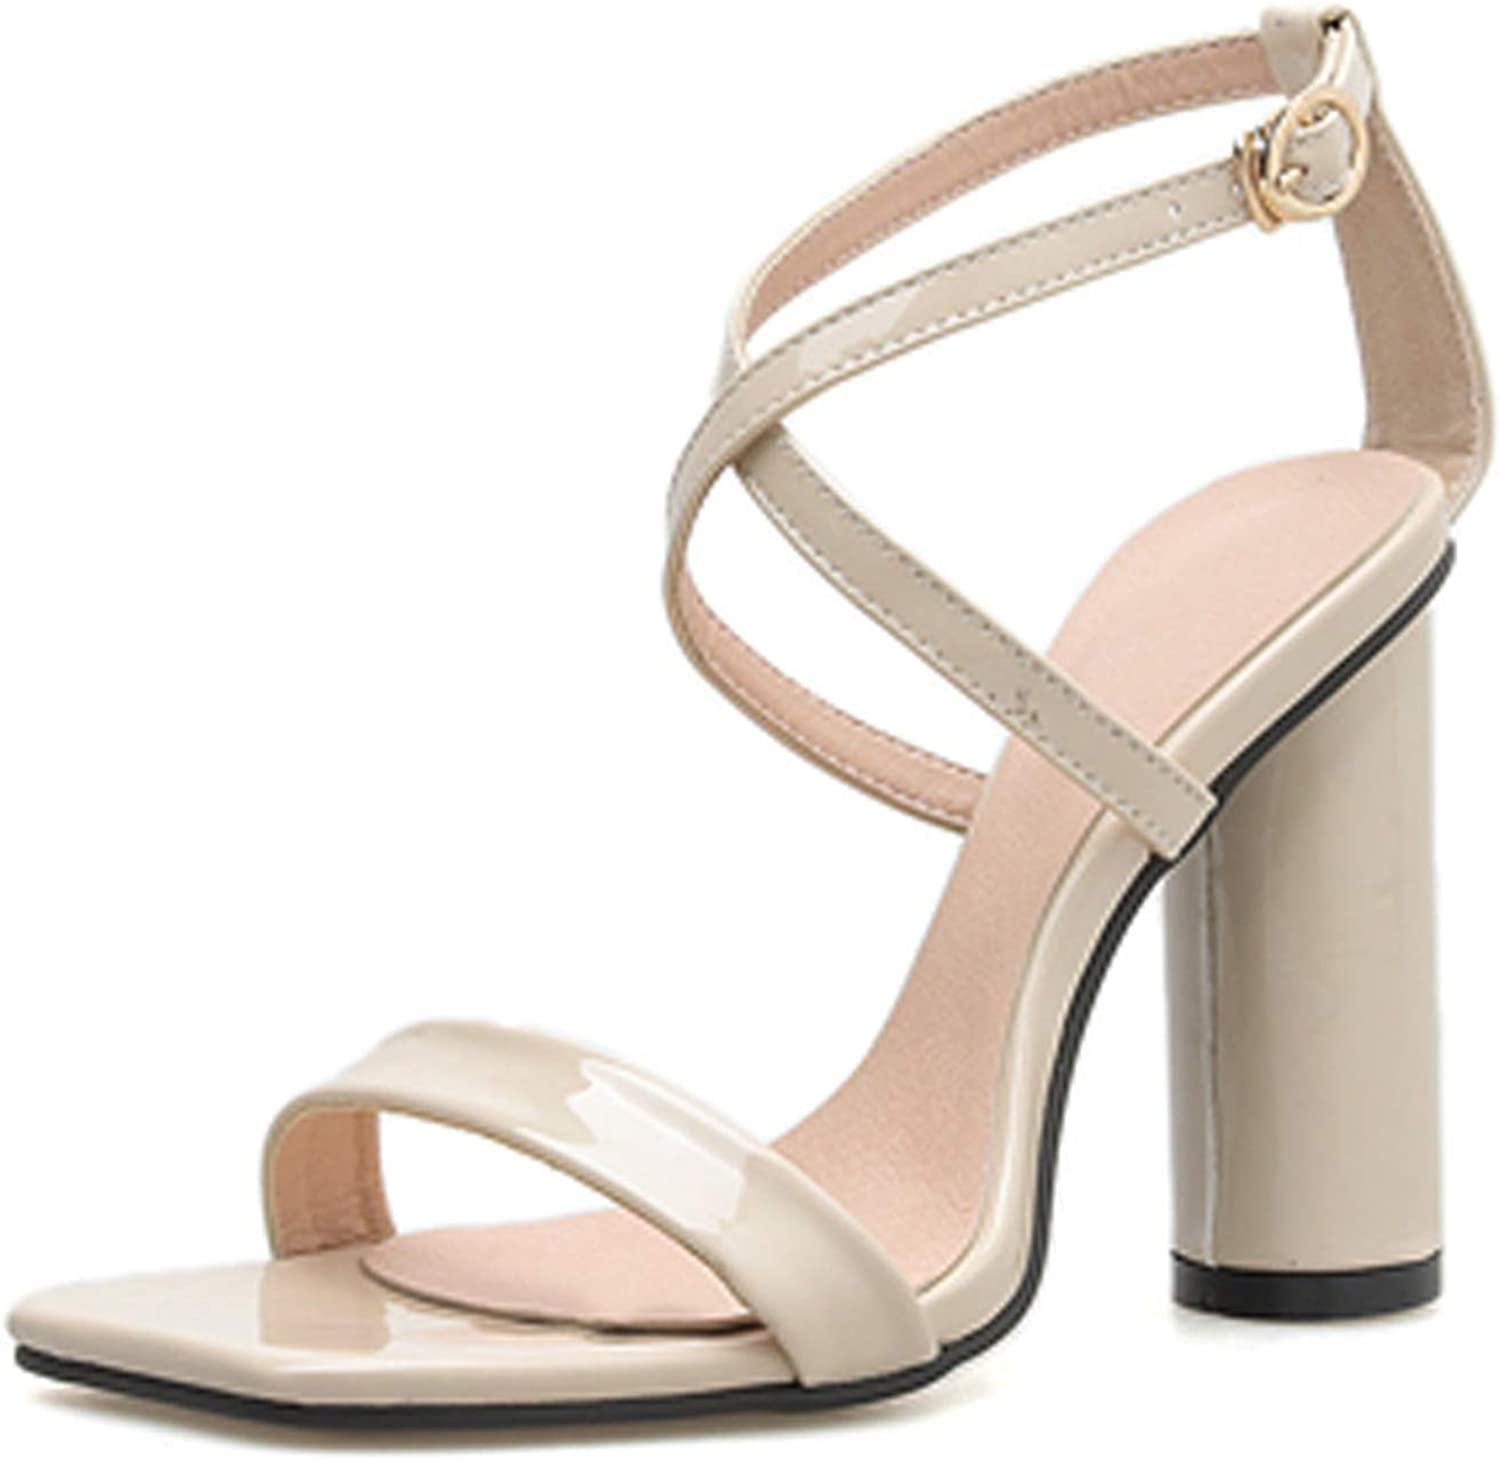 Ches 2019 Concise Buckle Strap Summer Sandals Square Heel Gladiator Apricot Black Women's Sandals women Dress shoes